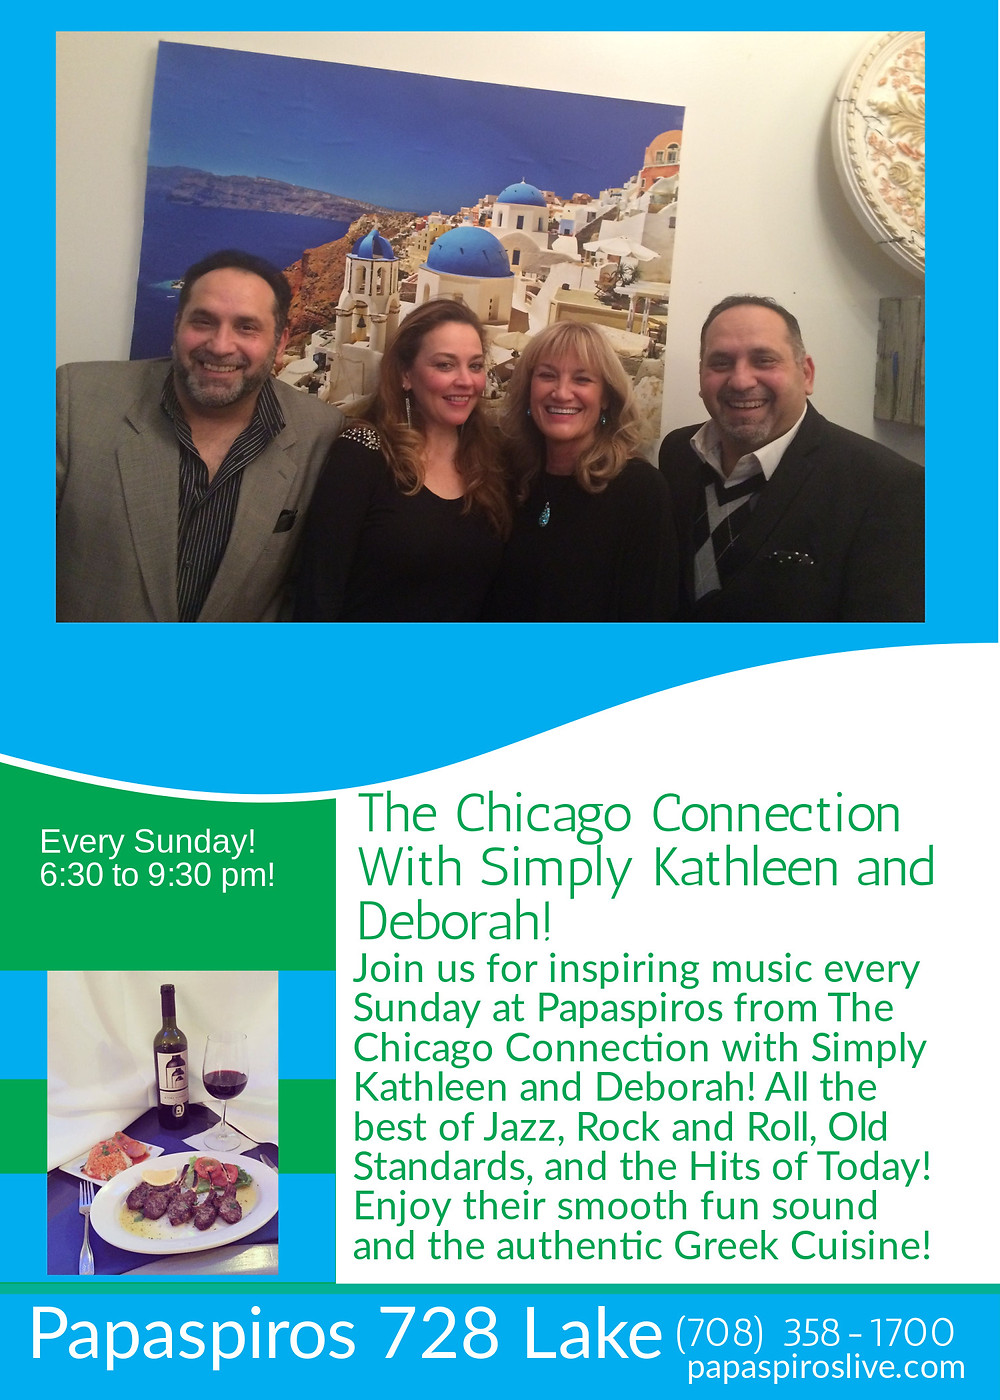 The Chicago Connection at Papaspiros! Sundays